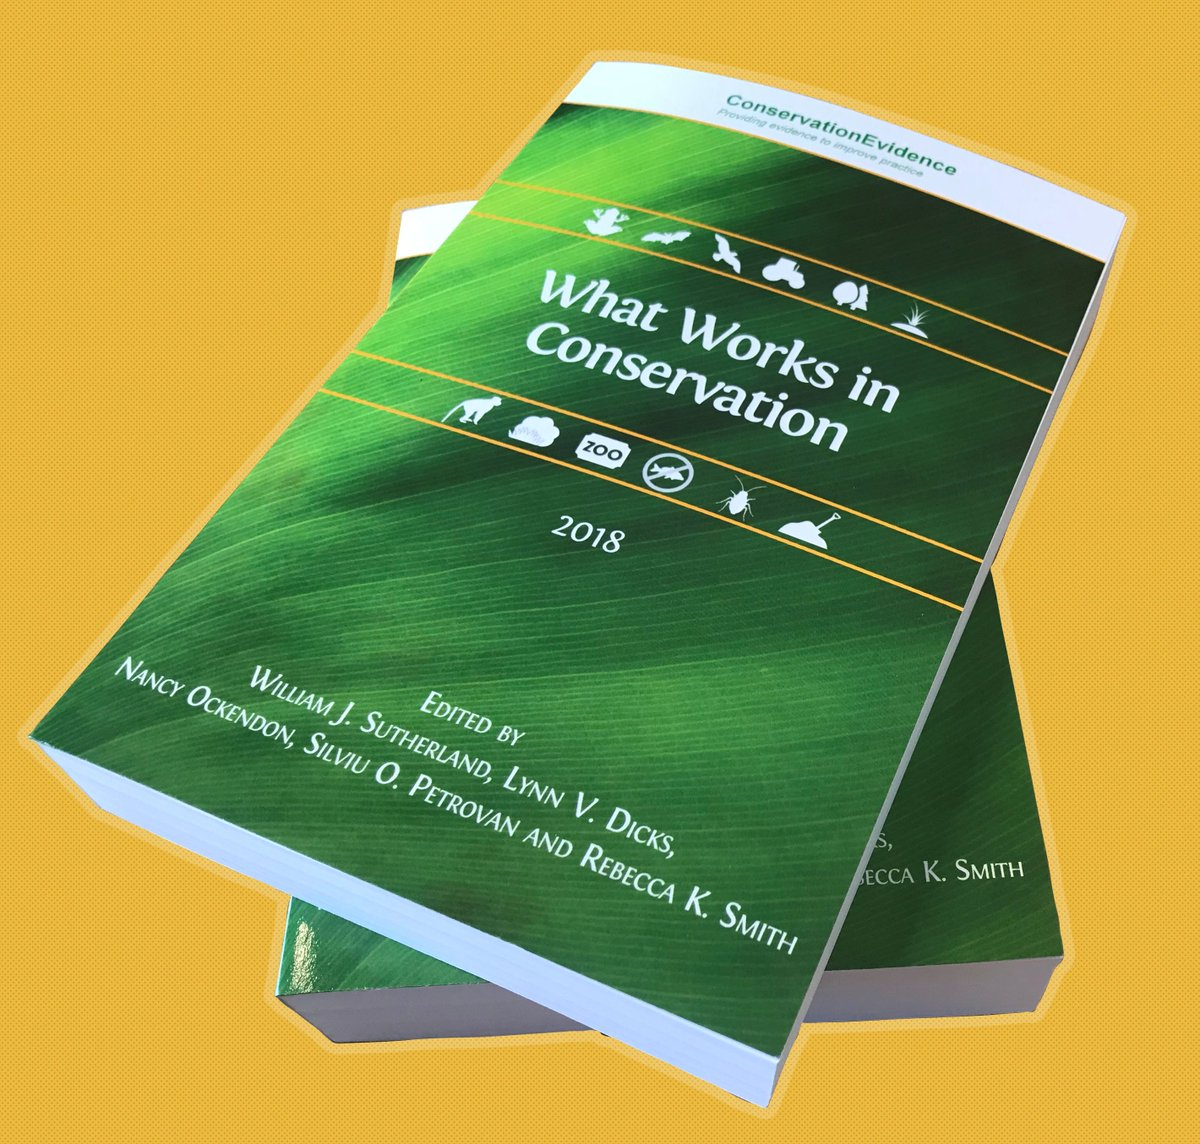 test Twitter Media - What works in #conservation? @ConservEvidence's 2018 edition is an essential, practical tool for conservationists on the ground. The book includes more than 1,200 of the latest scientific studies, and is #openaccess! https://t.co/4s908mevEQ @Bill_Sutherland https://t.co/XgyA6UbP6E